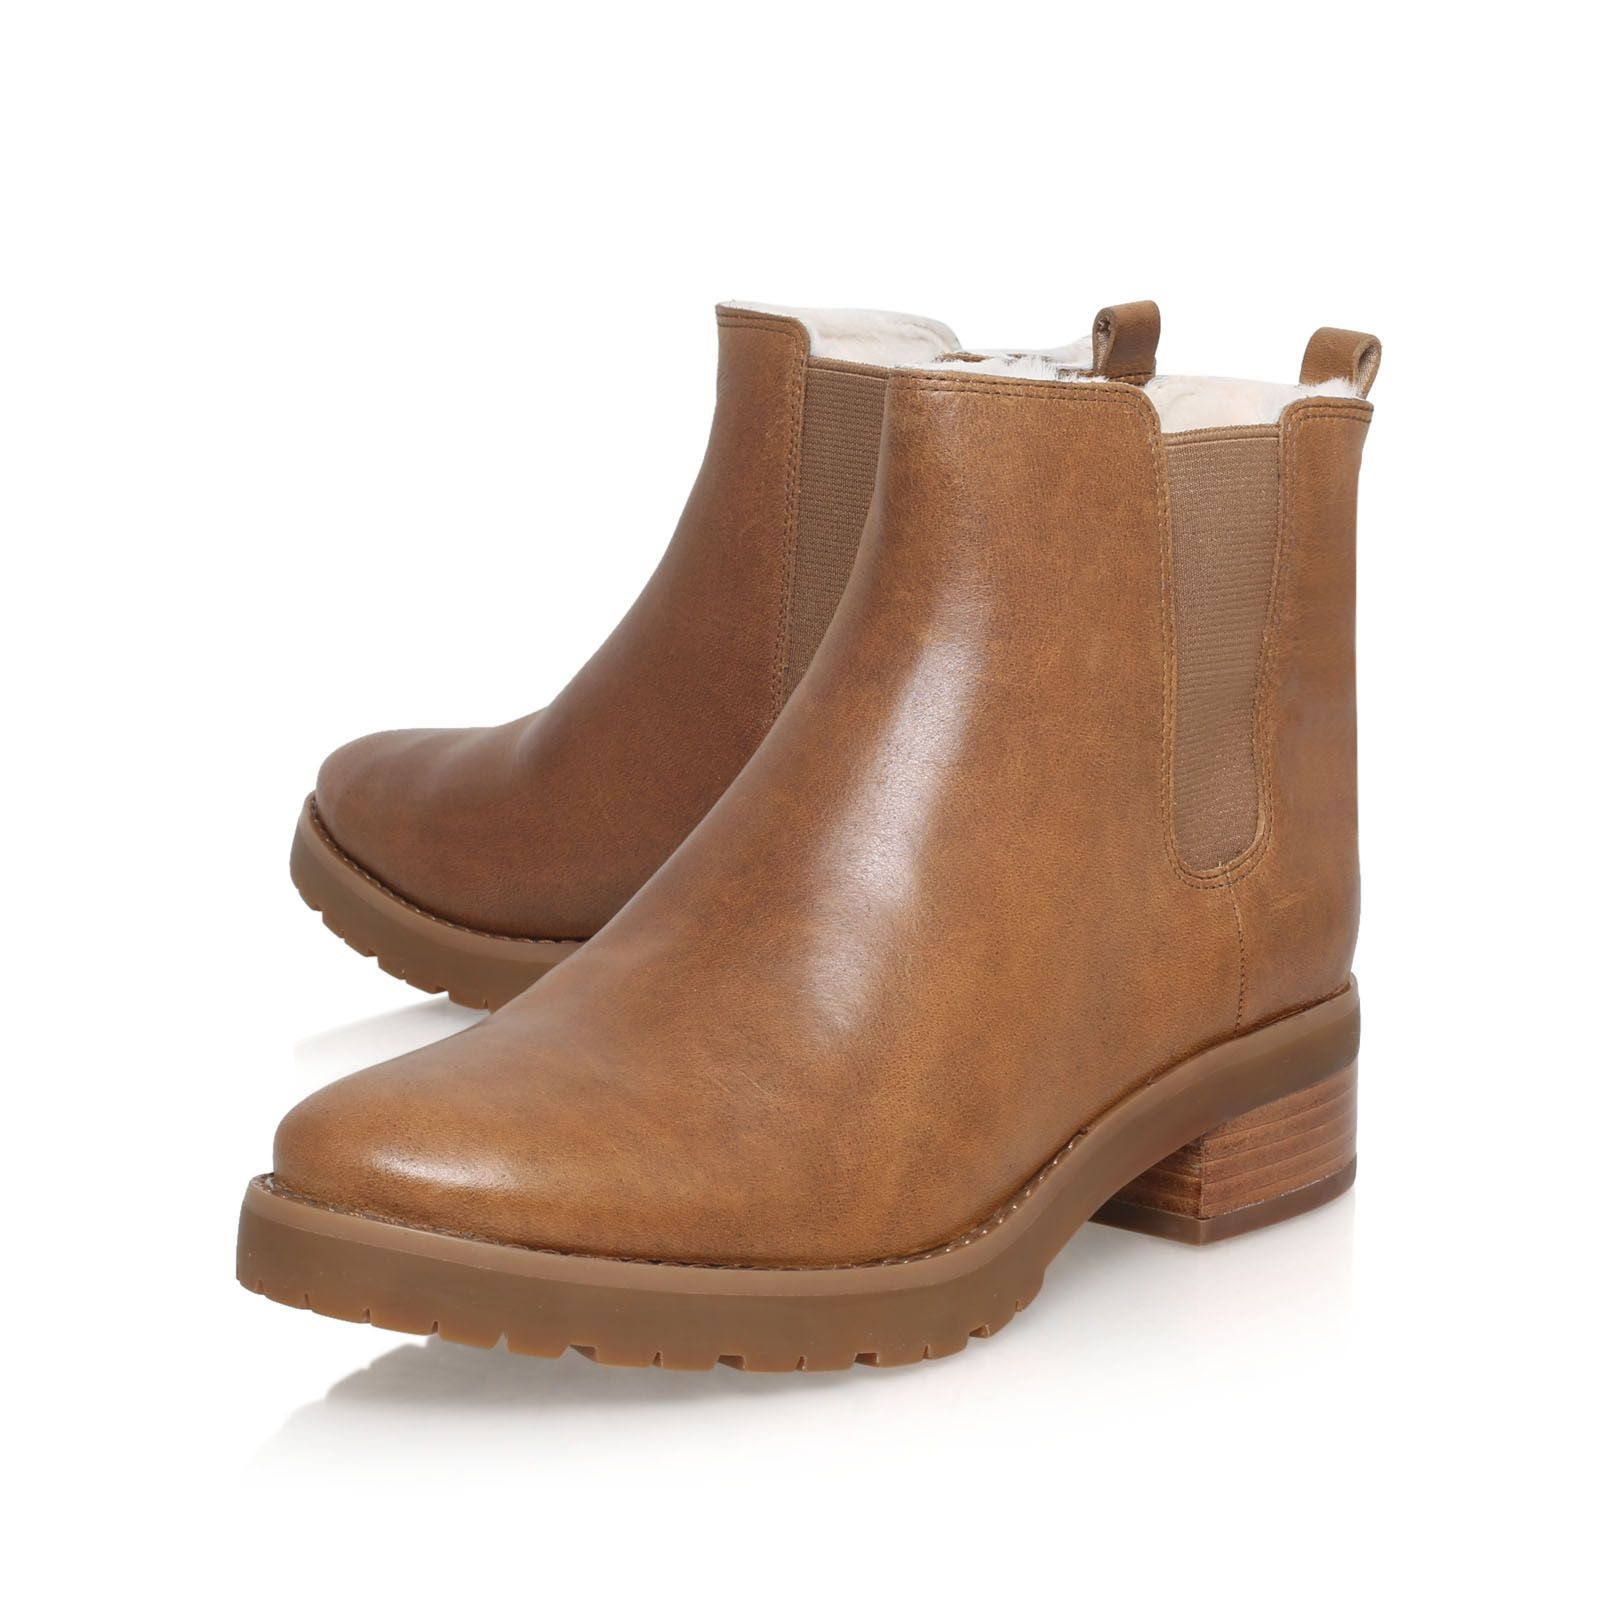 michael kors whitaker low heel ankle boots in brown lyst